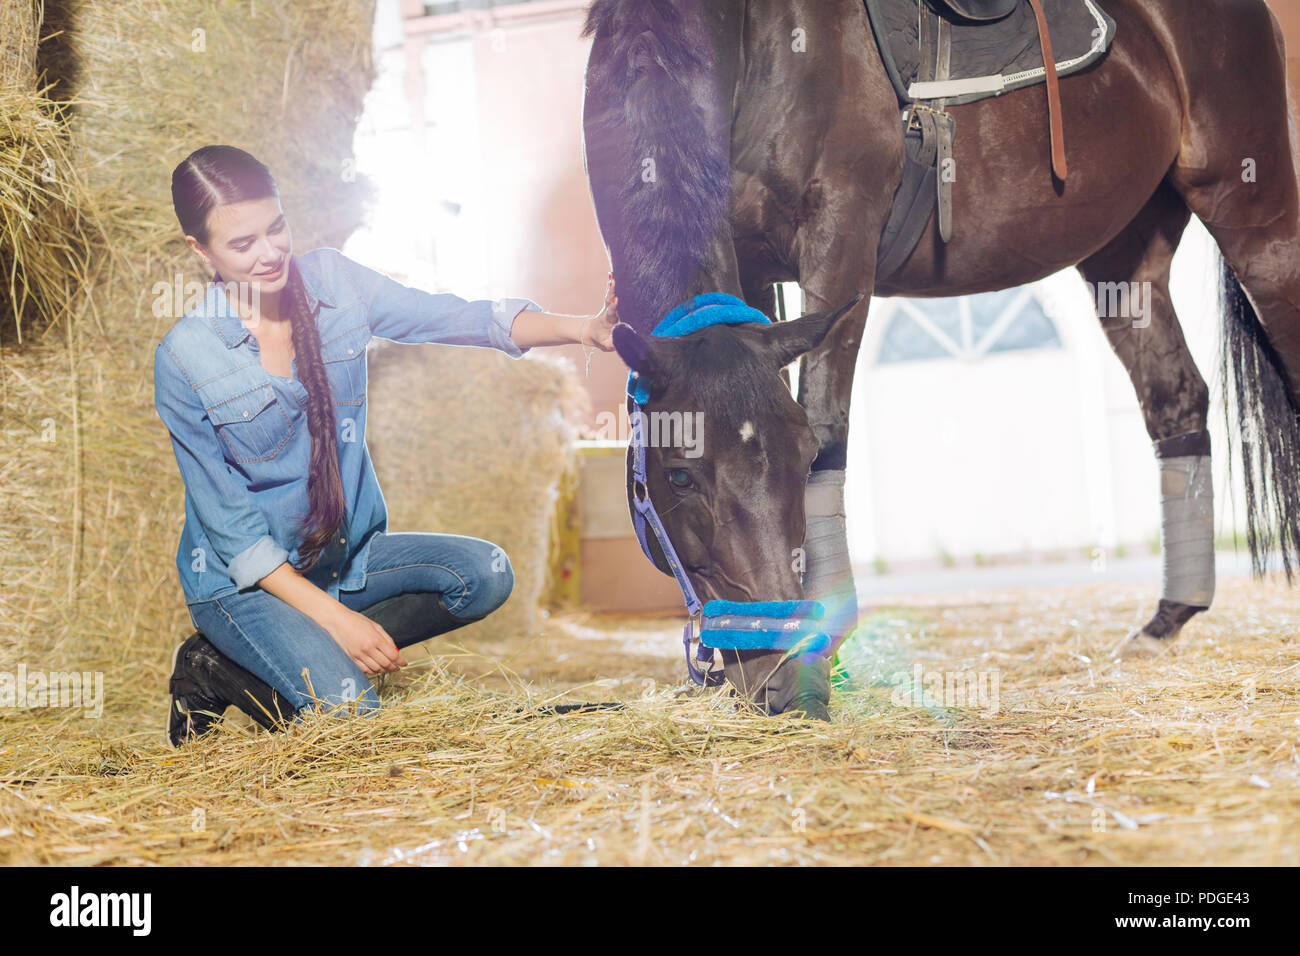 Horsewoman wearing denim clothes petting beautiful dark horse - Stock Image